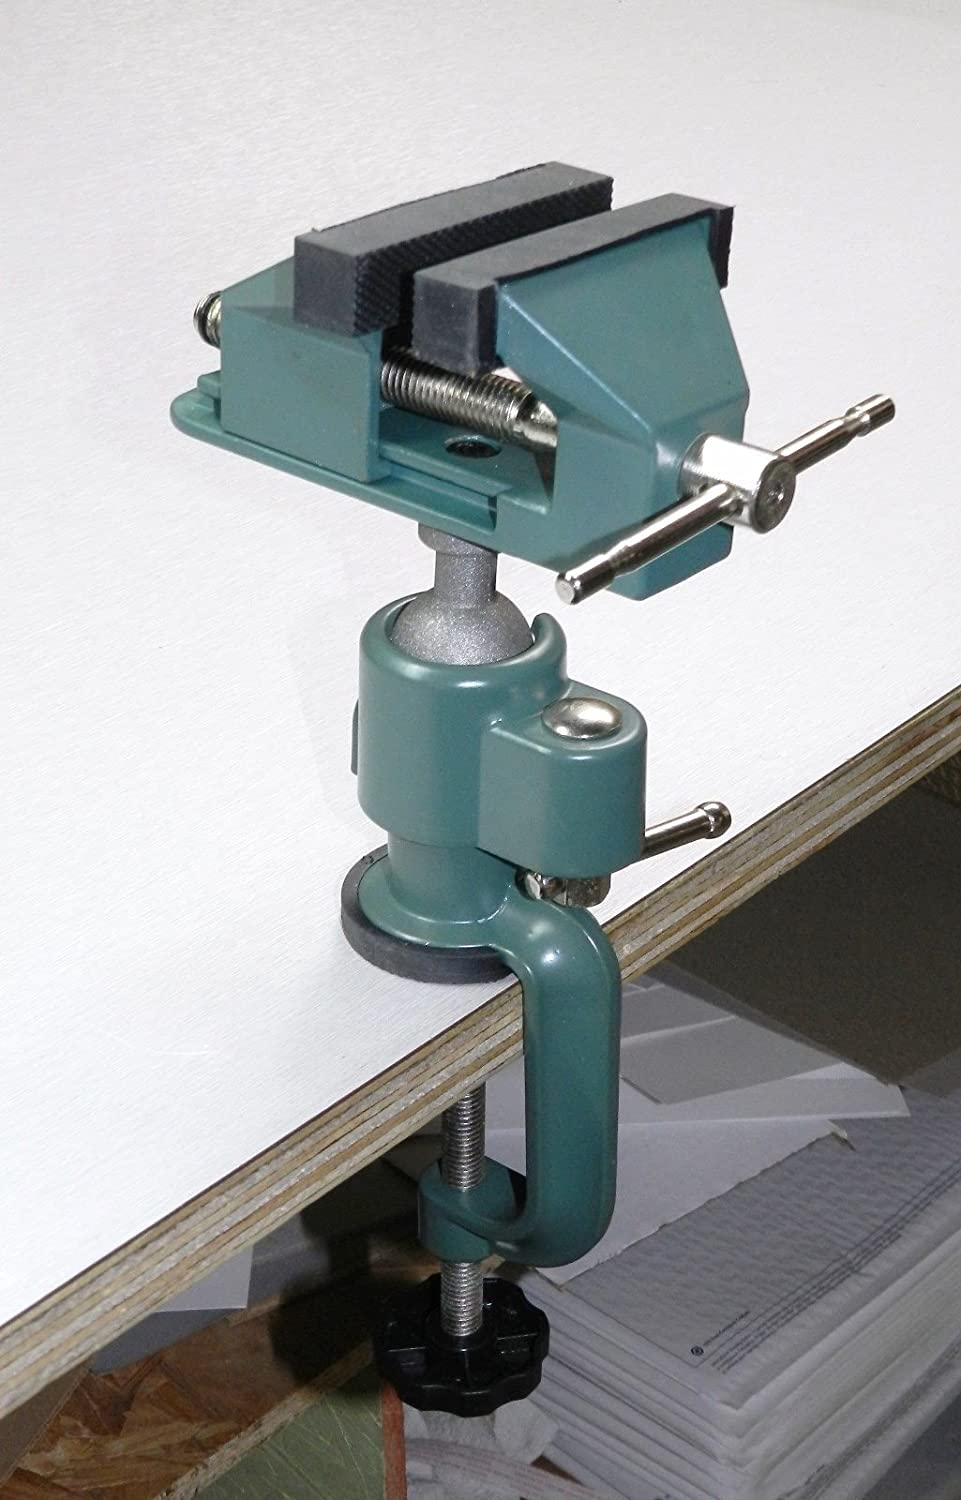 360° Rotate Table Top Bench Vice Fixed Electric Drill Vise Tilt Adjustable Clamp